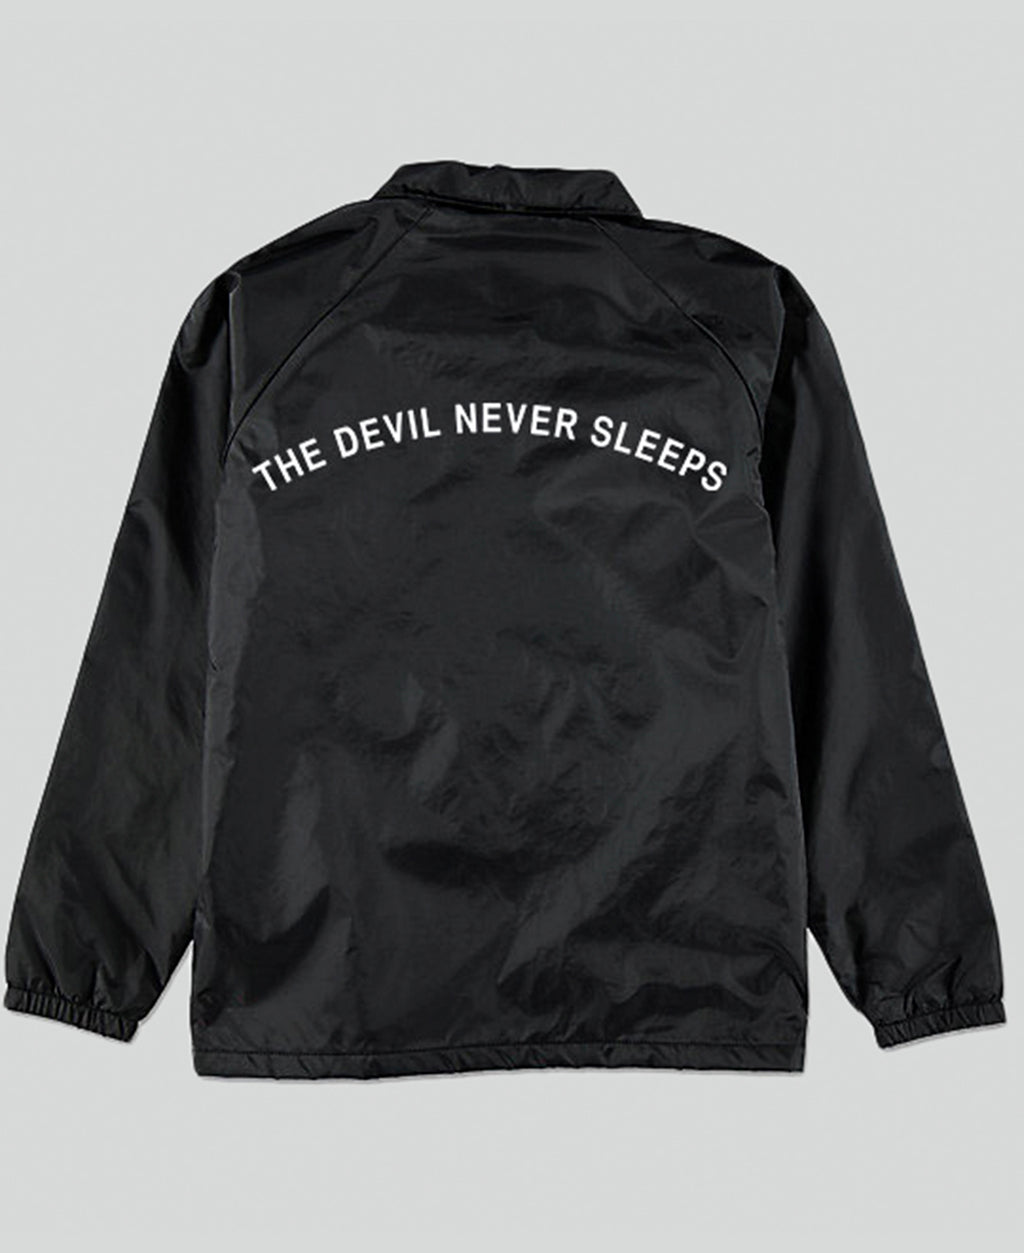 Devil Never Sleeps Jacket - The Anti Life Ltd